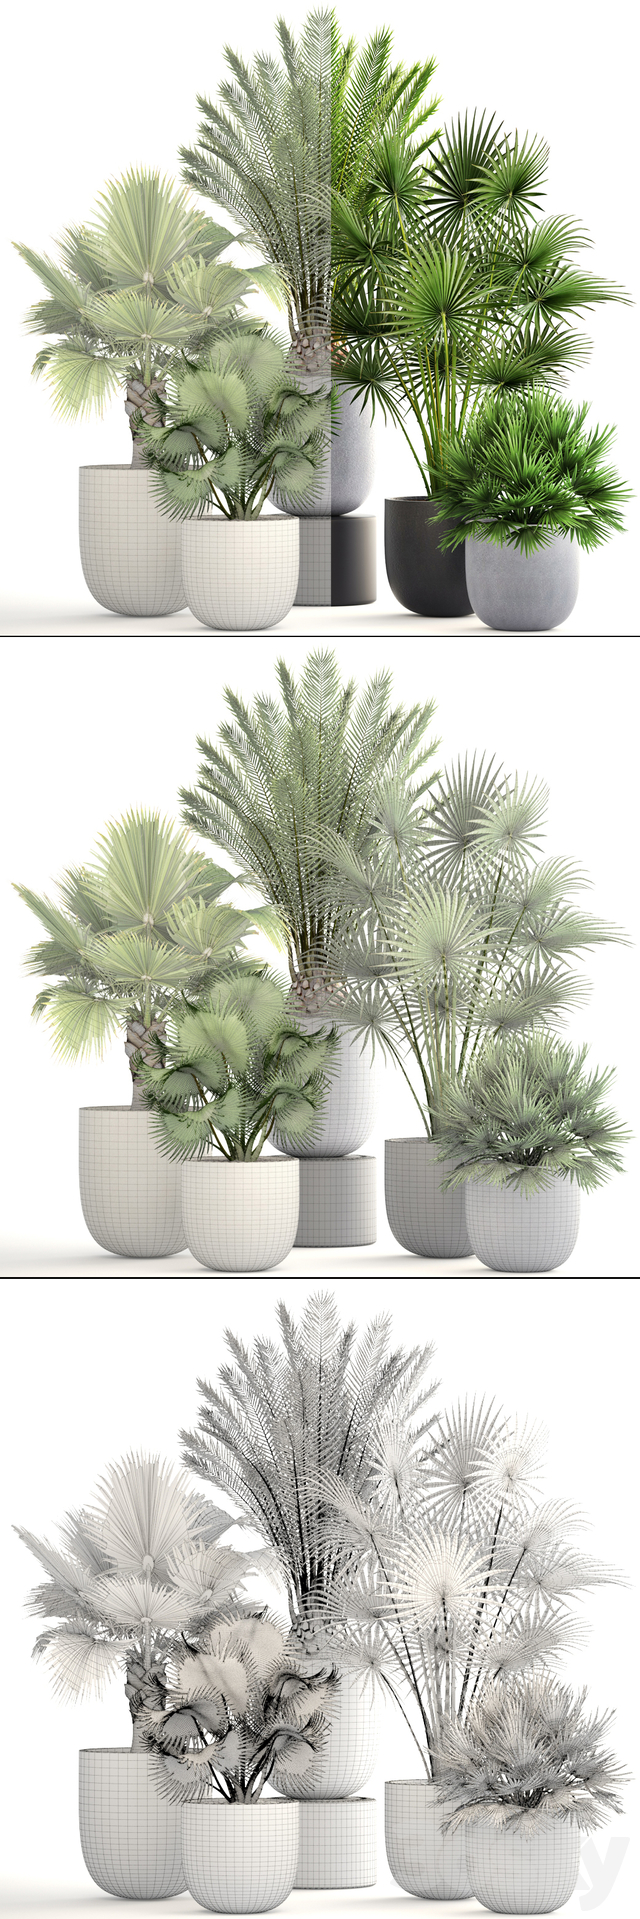 Collection of plants 185.